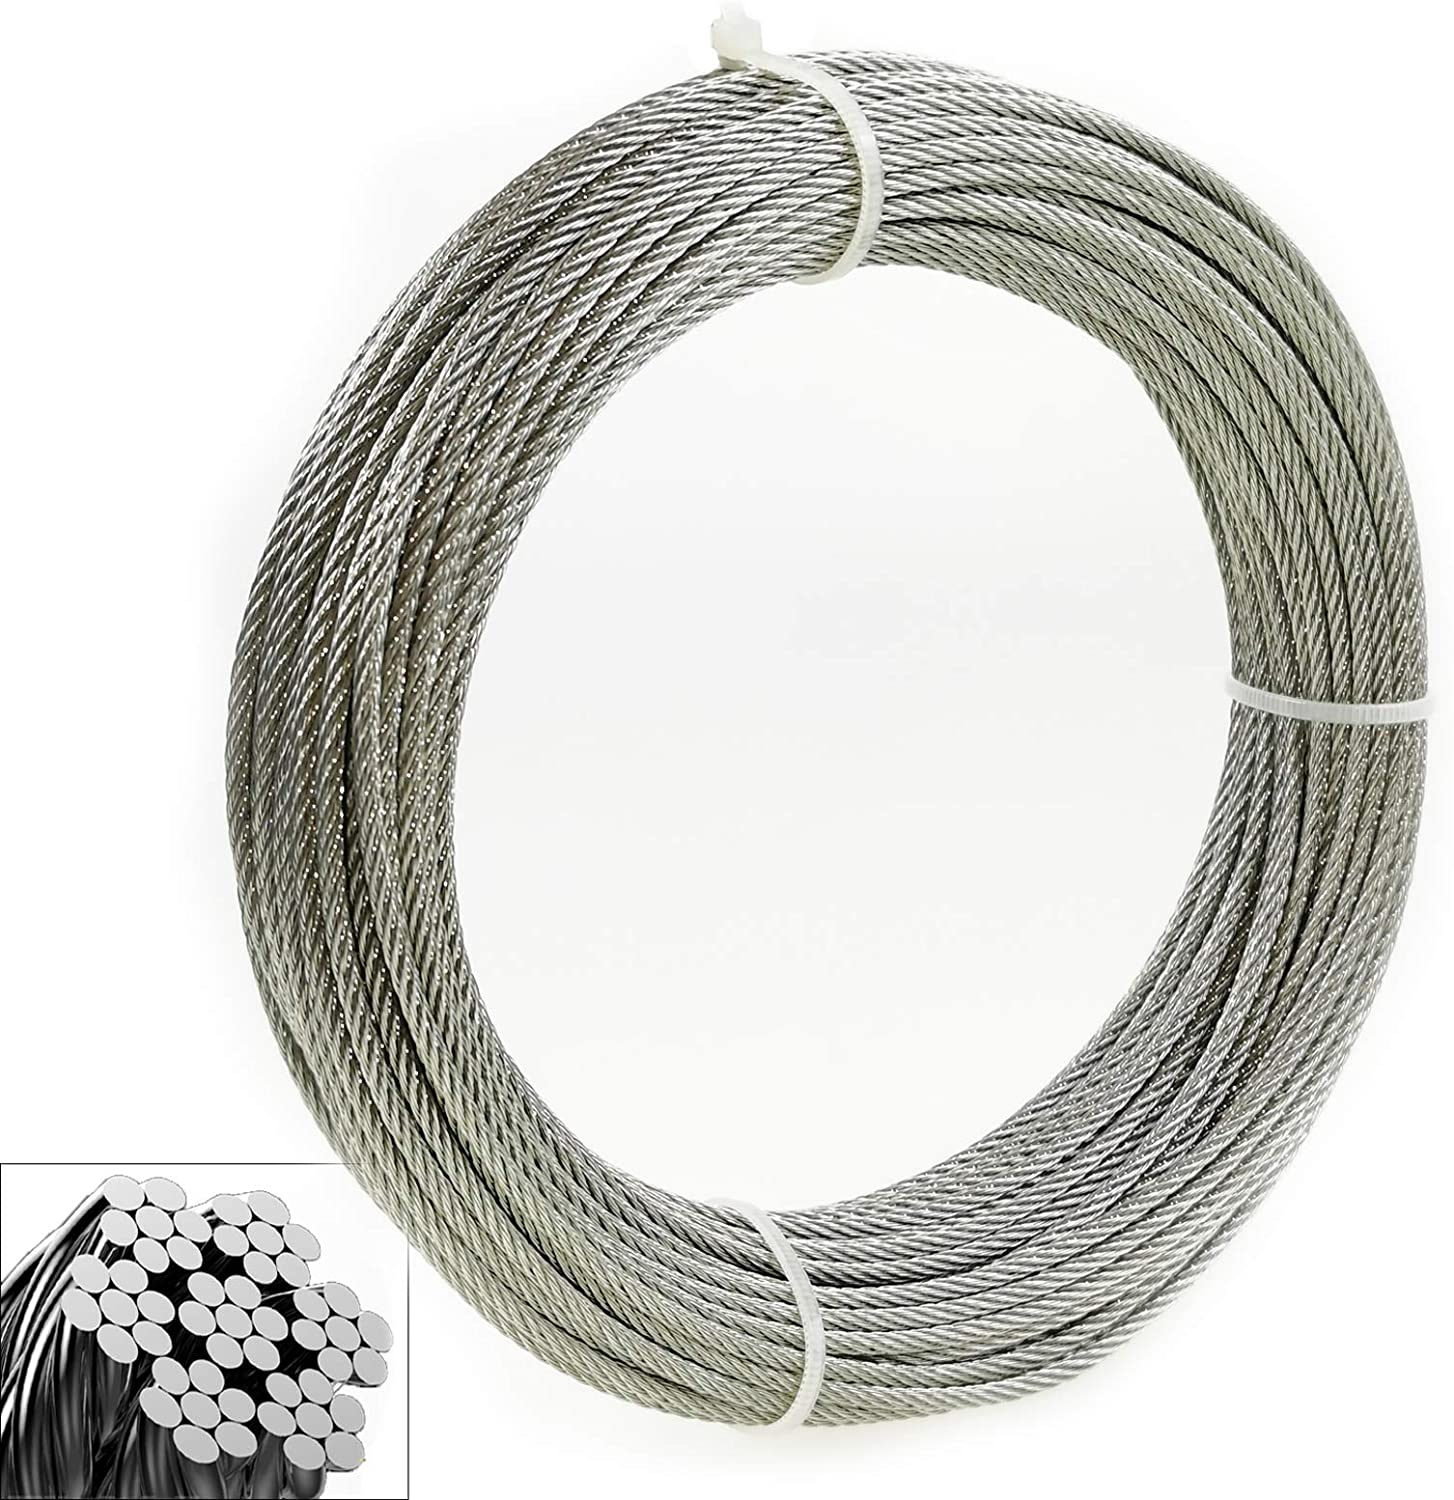 1/8 Inch Stainless Steel Wire Rope Aircraft Cable for Cable Railing Kit,Deck Stair Railing Hardware DIY Balustrade, 7x7 T316 Marin Grade (400 Ft)